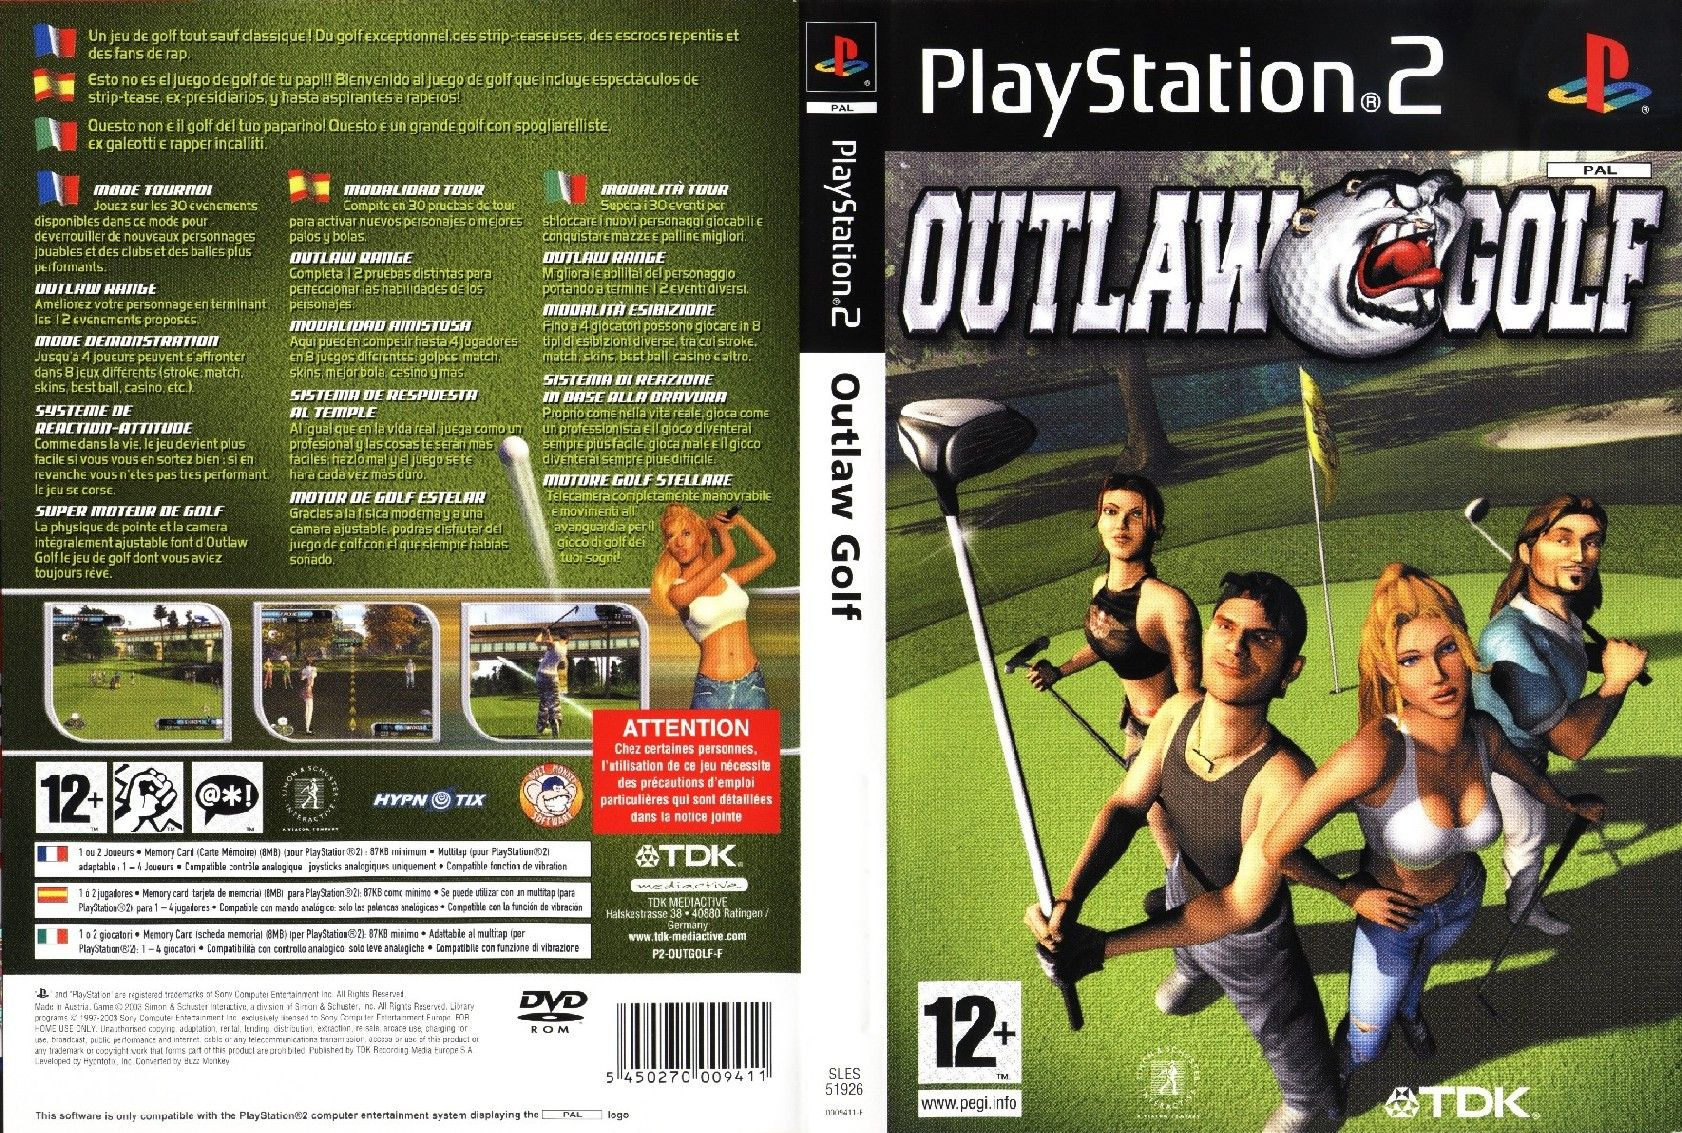 Outlaw golf 2 girls nude pron download